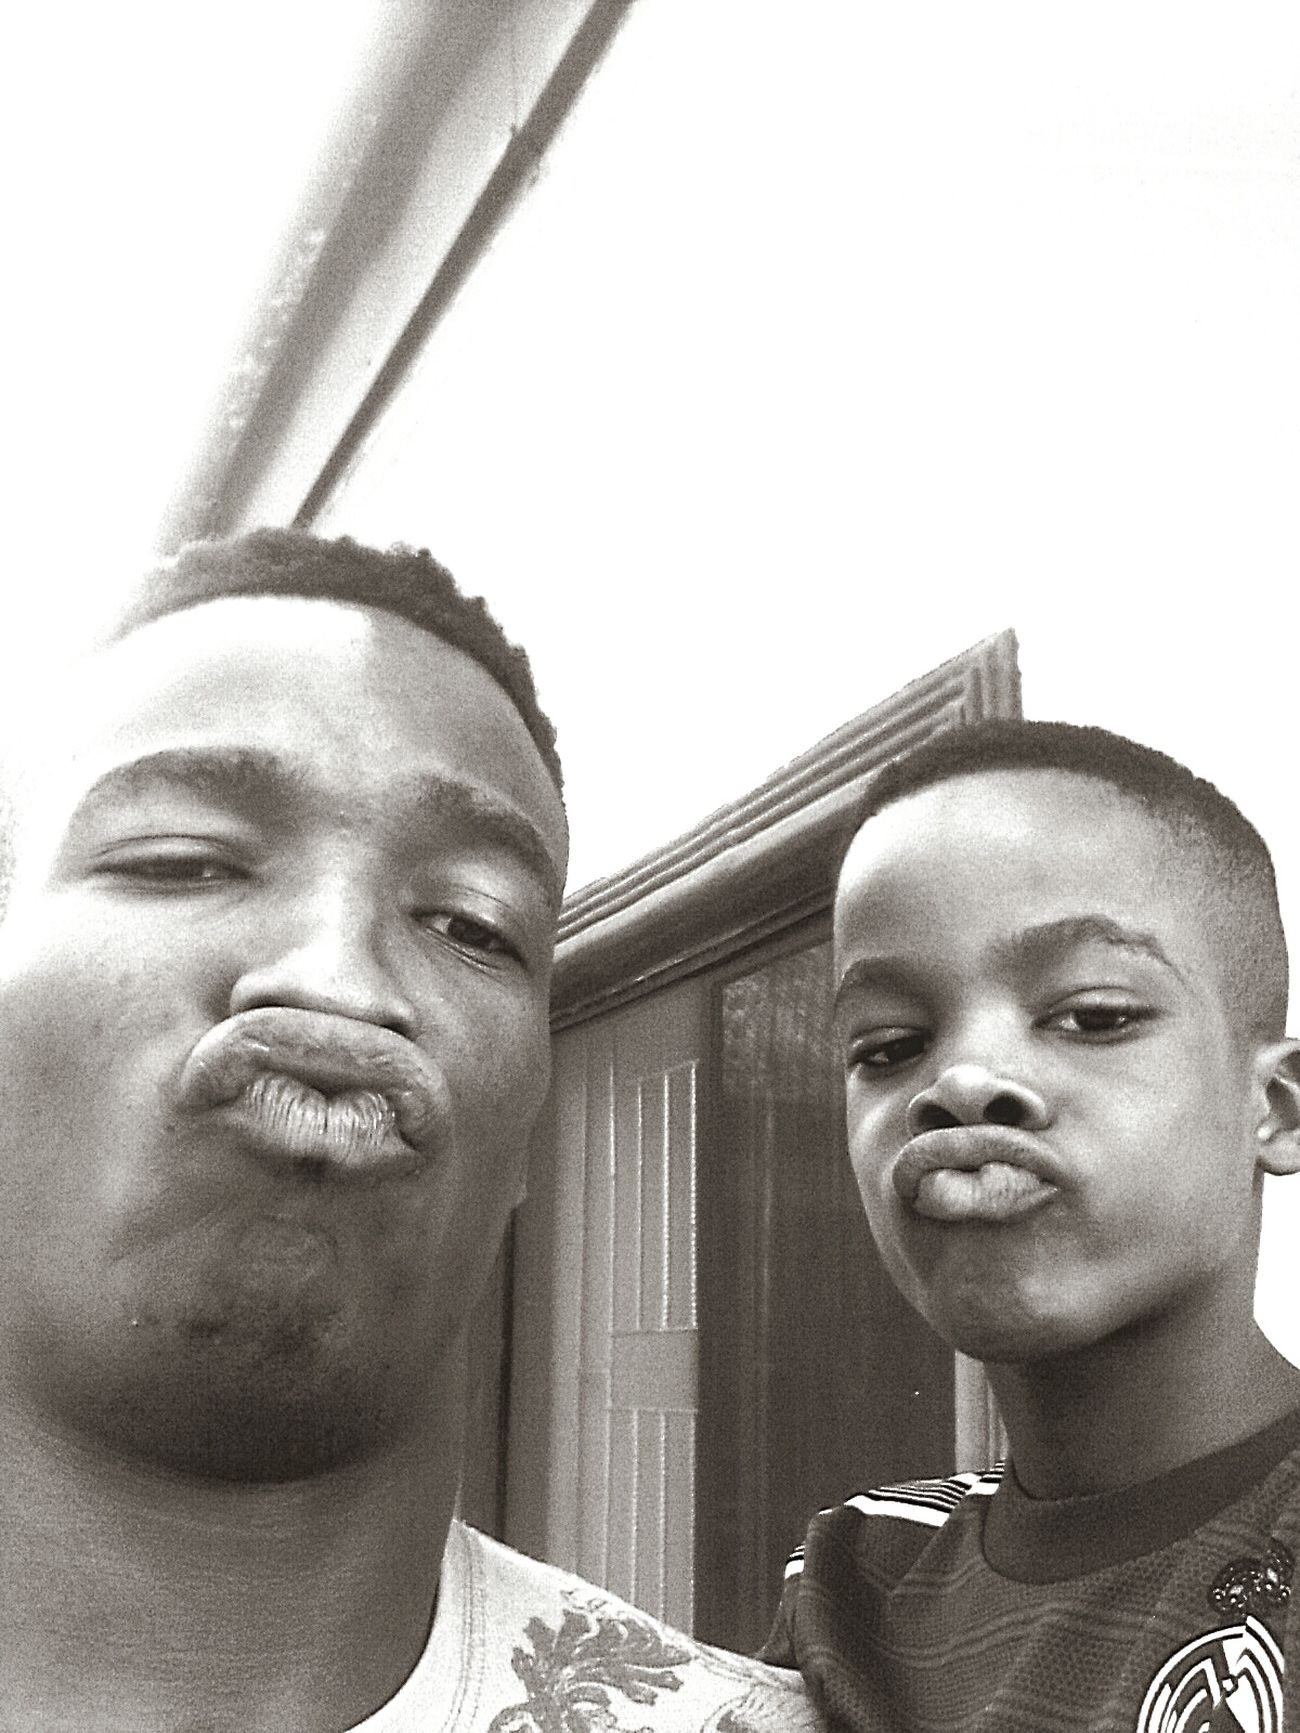 Young Kings Black Nd White Errthin yee we know Hate All Day It Dont Make No Difference